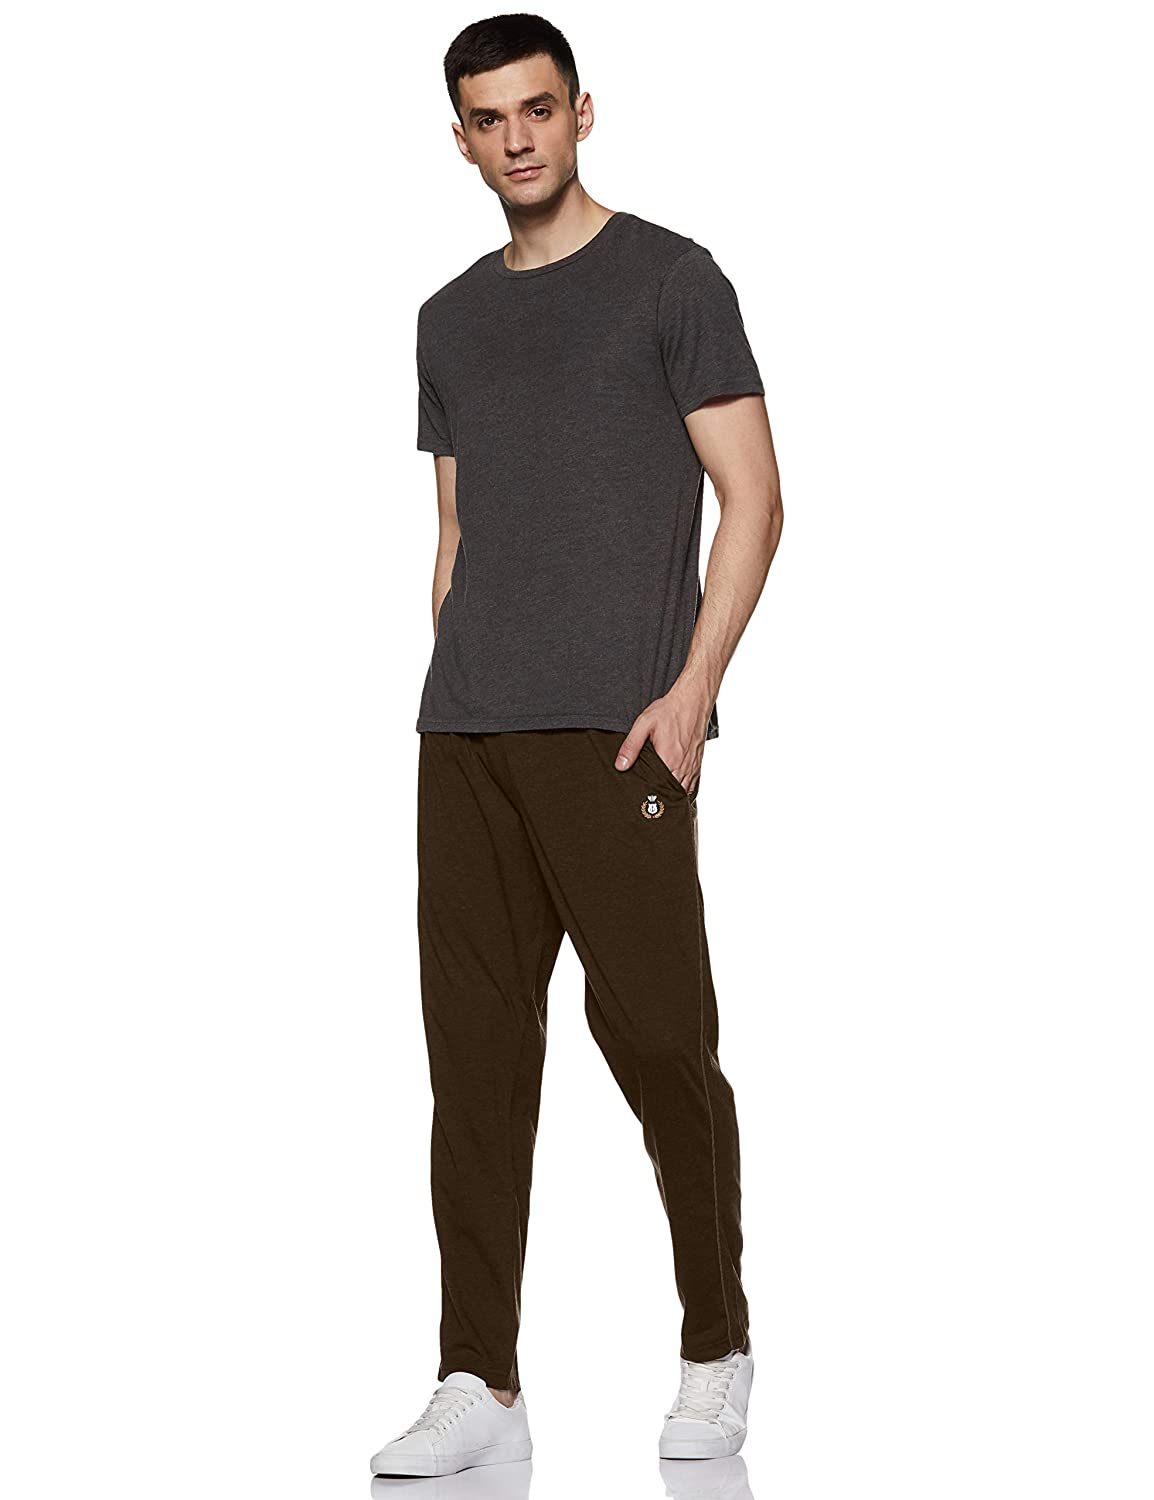 Cazibe Relaxed Fit Men's Track Pant for ₹249